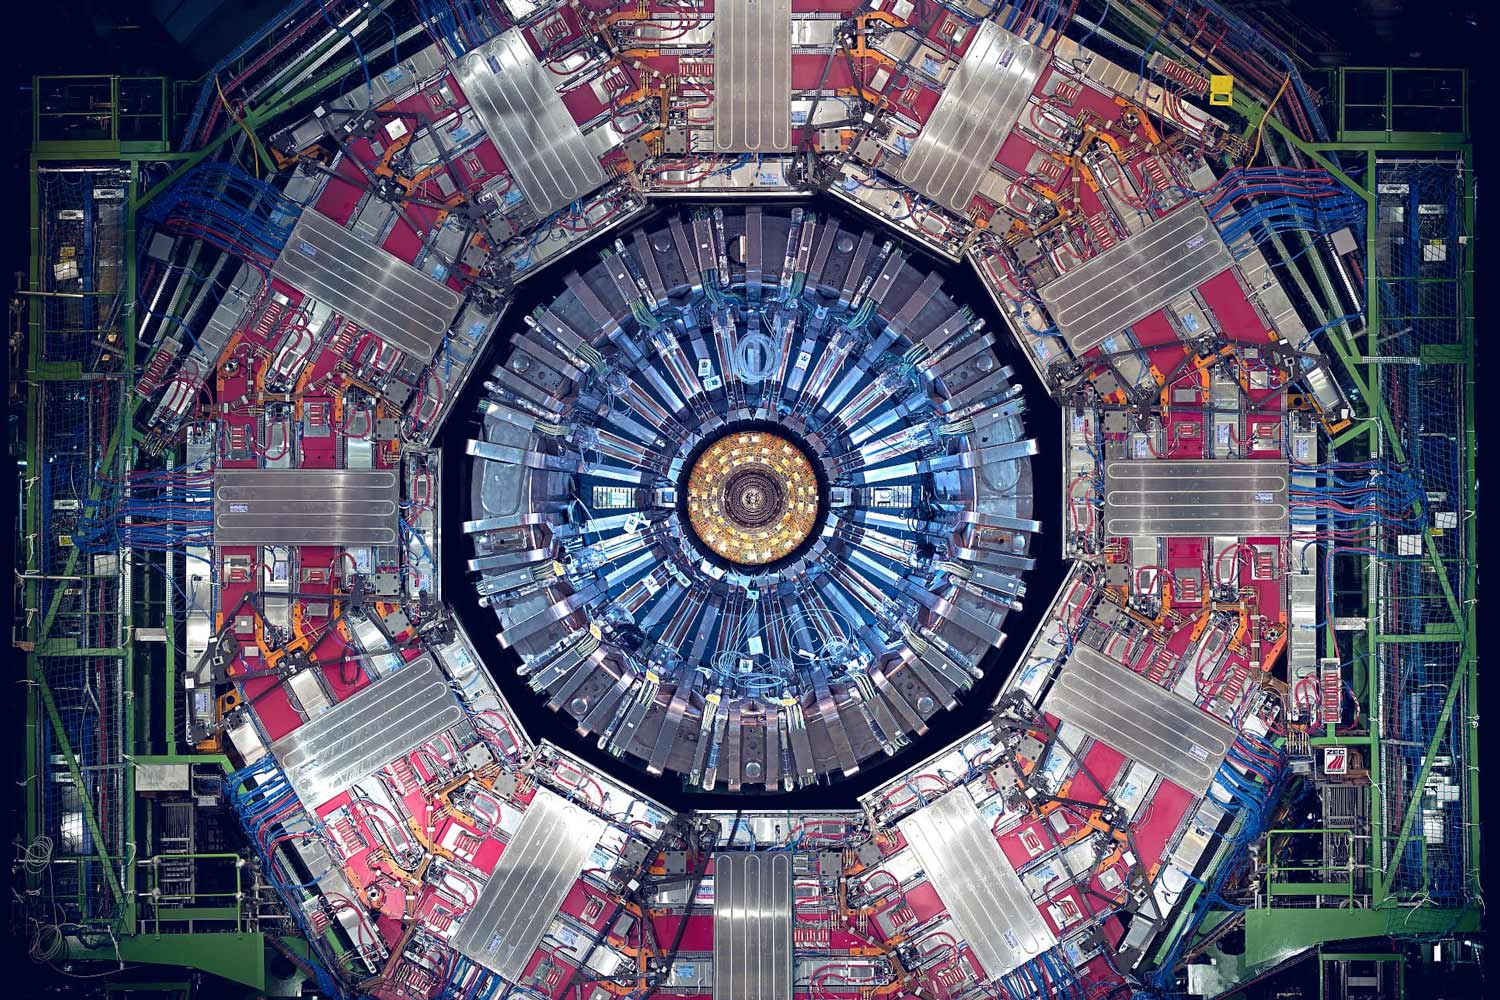 A particle detector at the Large Hadron Collider in Europe. UVA physicists have been involved with projects there since it was built, and have contributed instruments built at UVA.